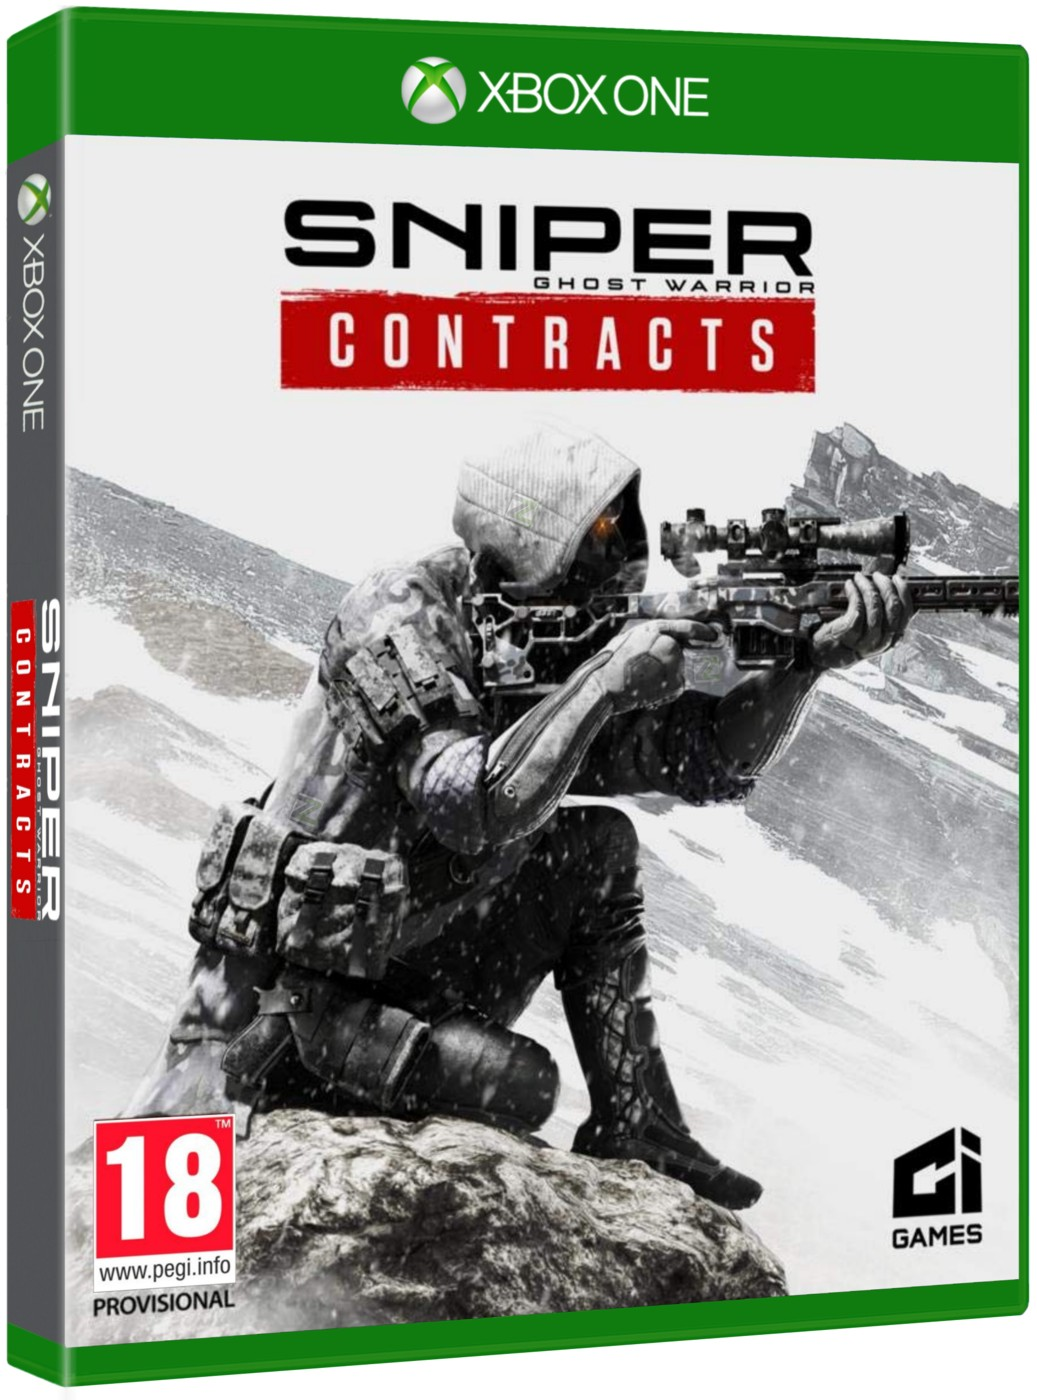 Sniper: Ghost Warrior Contracts - Xbox One